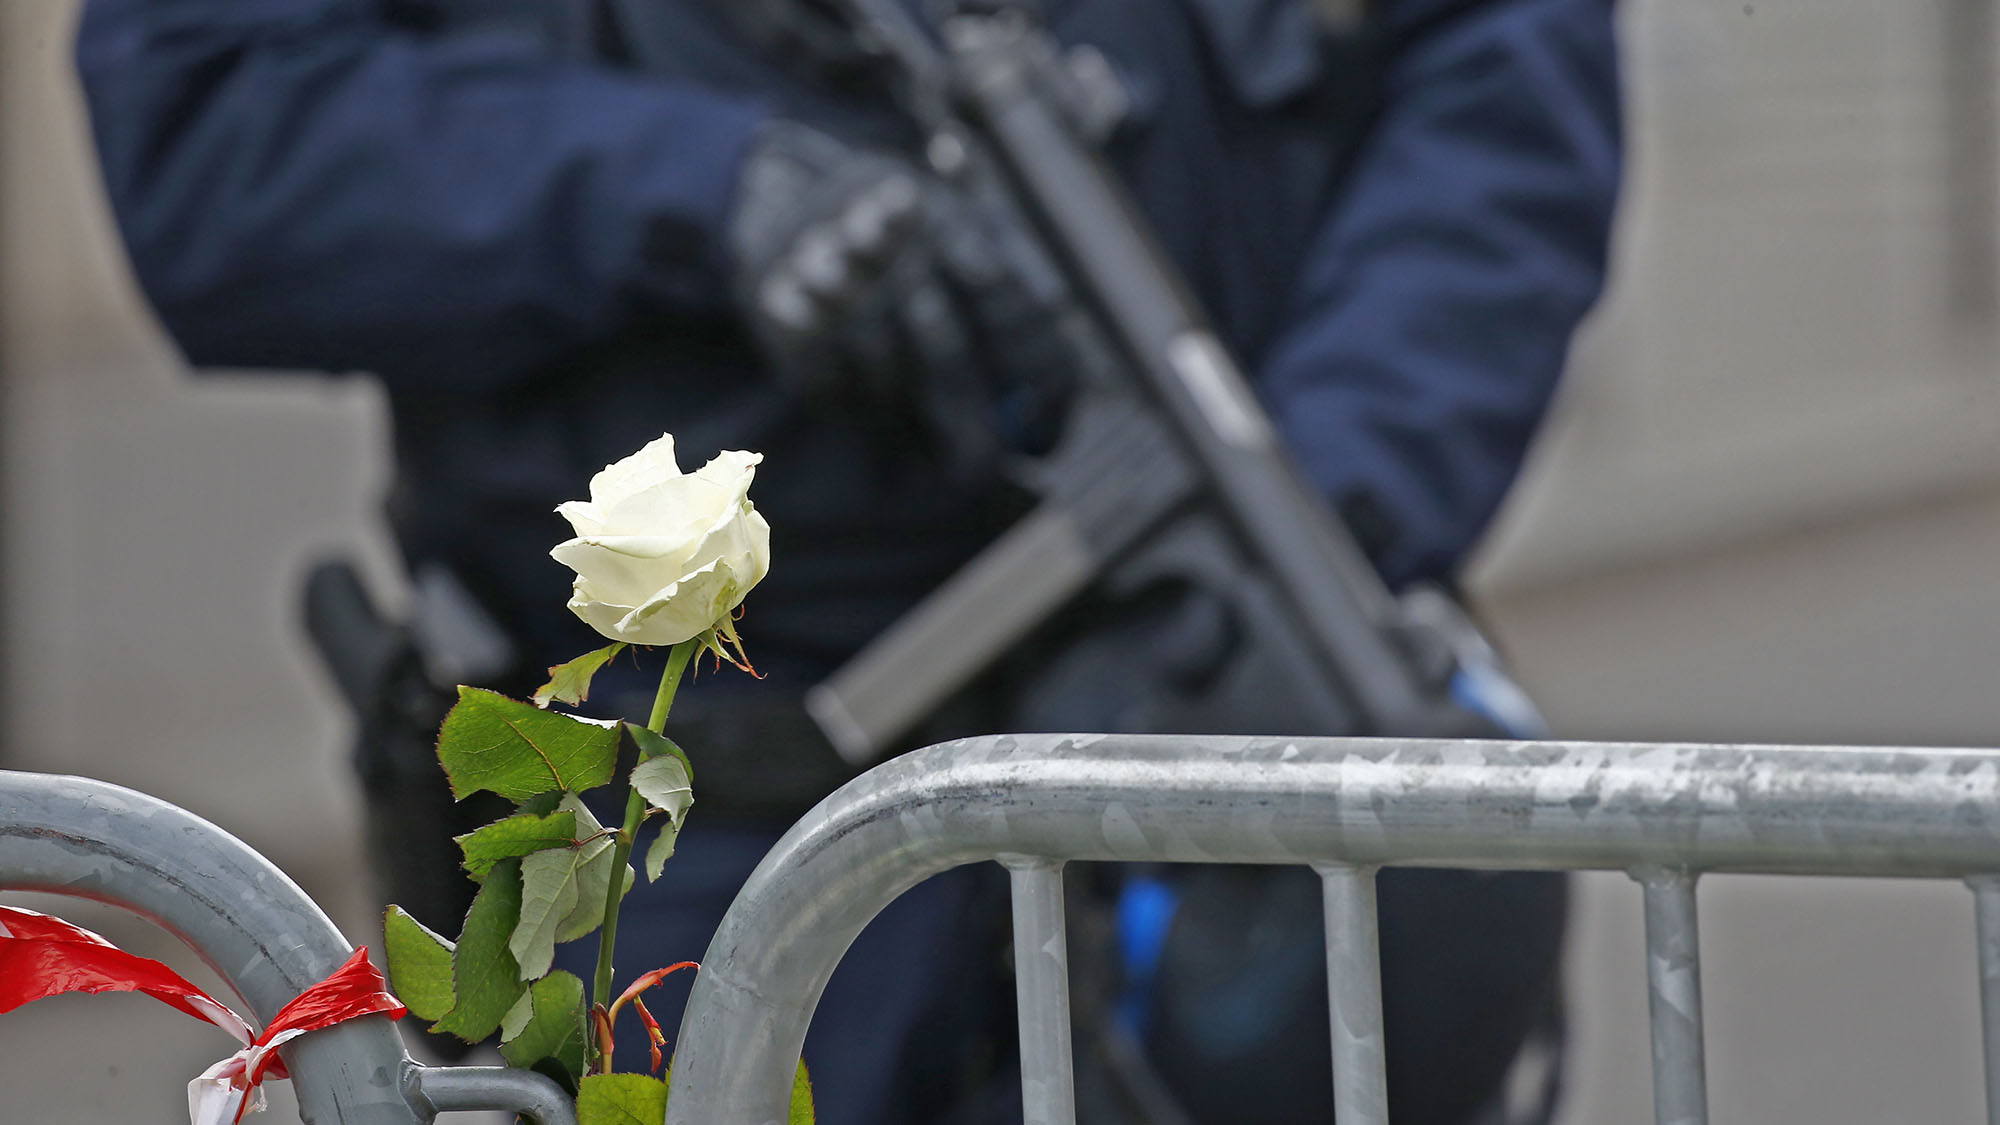 A white rose is attached to a barrier as a French policeman with an automatic weapon secures the area near the Bataclan concert hall the day after a series of deadly attacks in Paris, France, November 14, 2015.